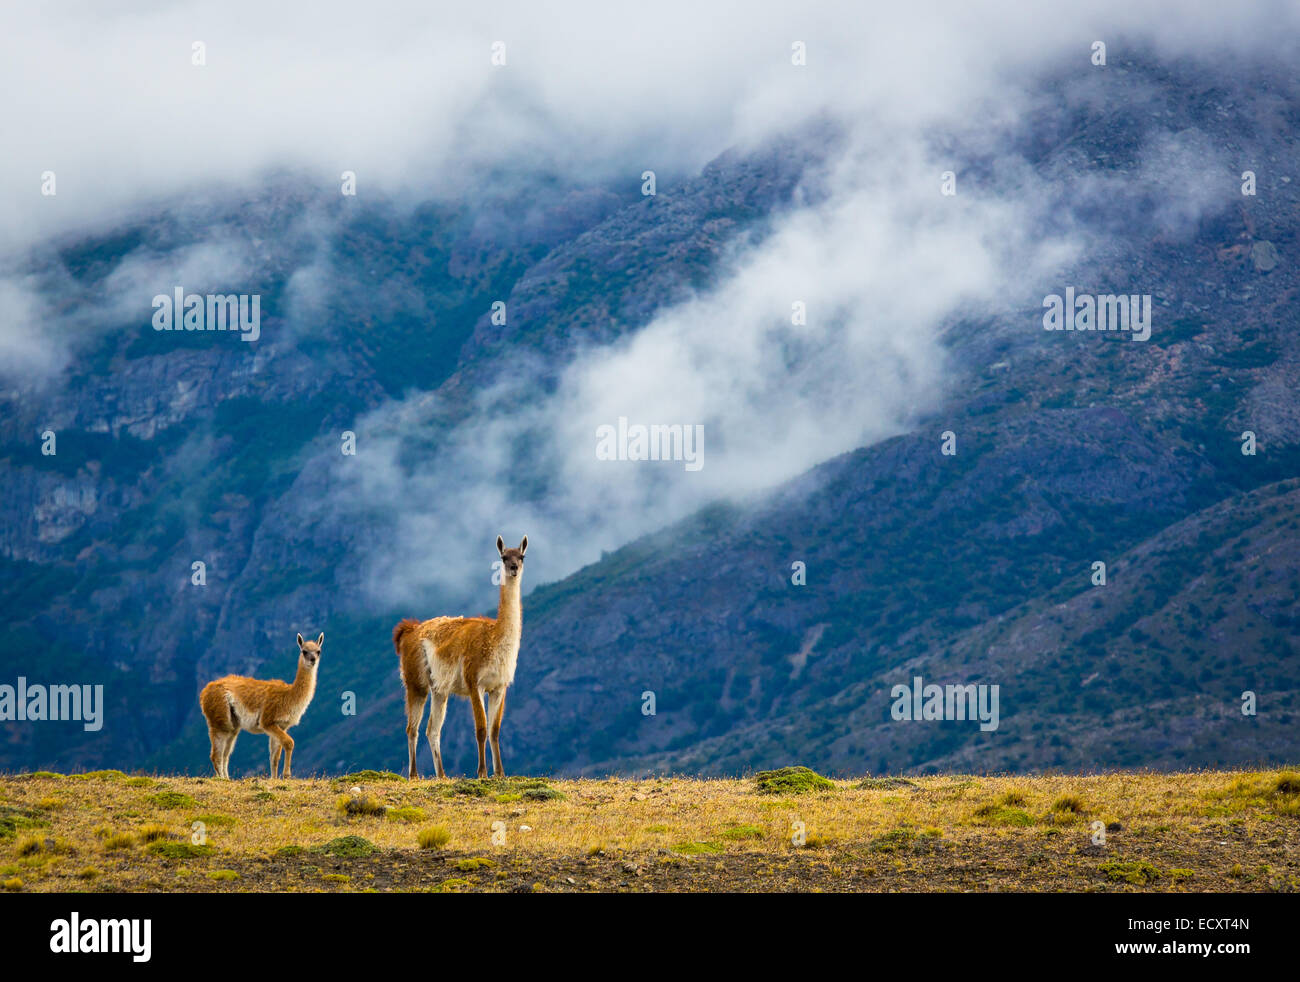 The guanaco is a camelid native to South America that stands between 1 and 1.2 metres and wieghes about 90 kg - Stock Image